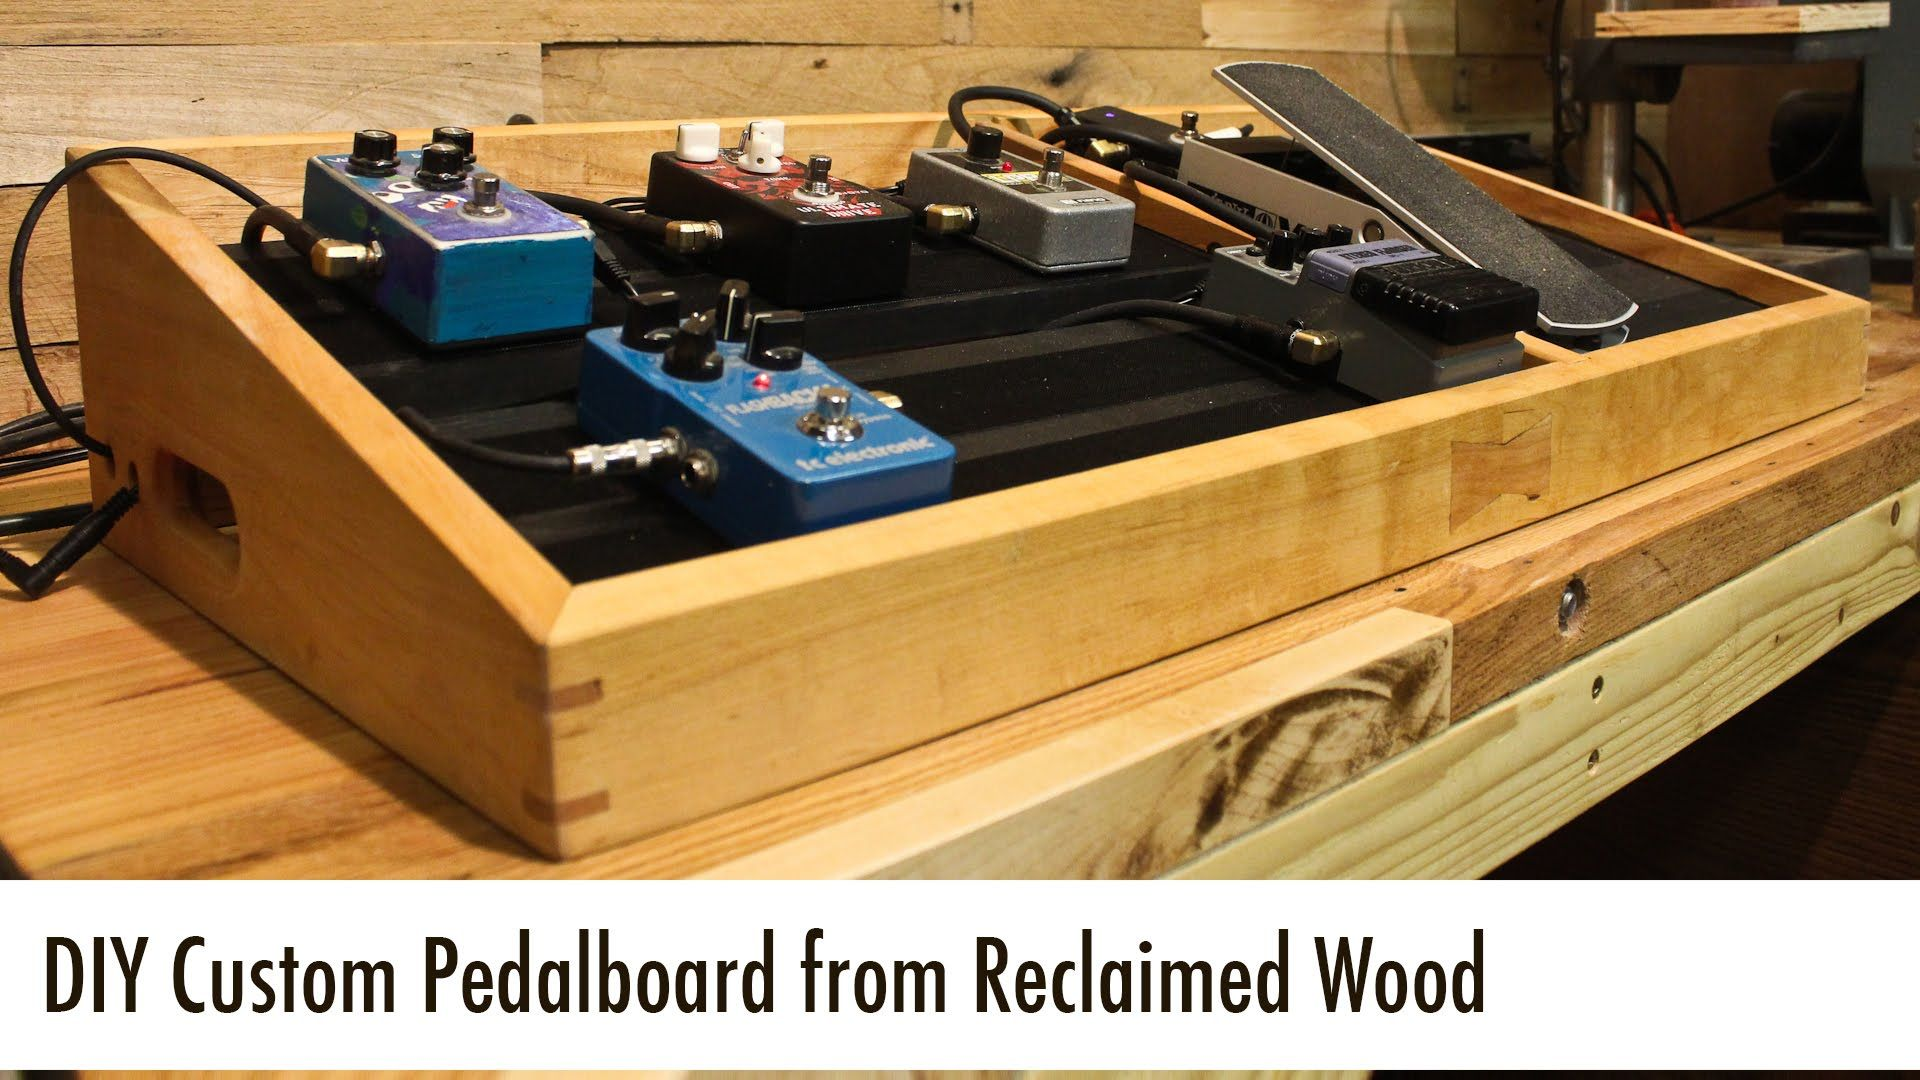 diy custom pedalboard from reclaimed wood projects diy pedalboard pedalboard small guitar. Black Bedroom Furniture Sets. Home Design Ideas